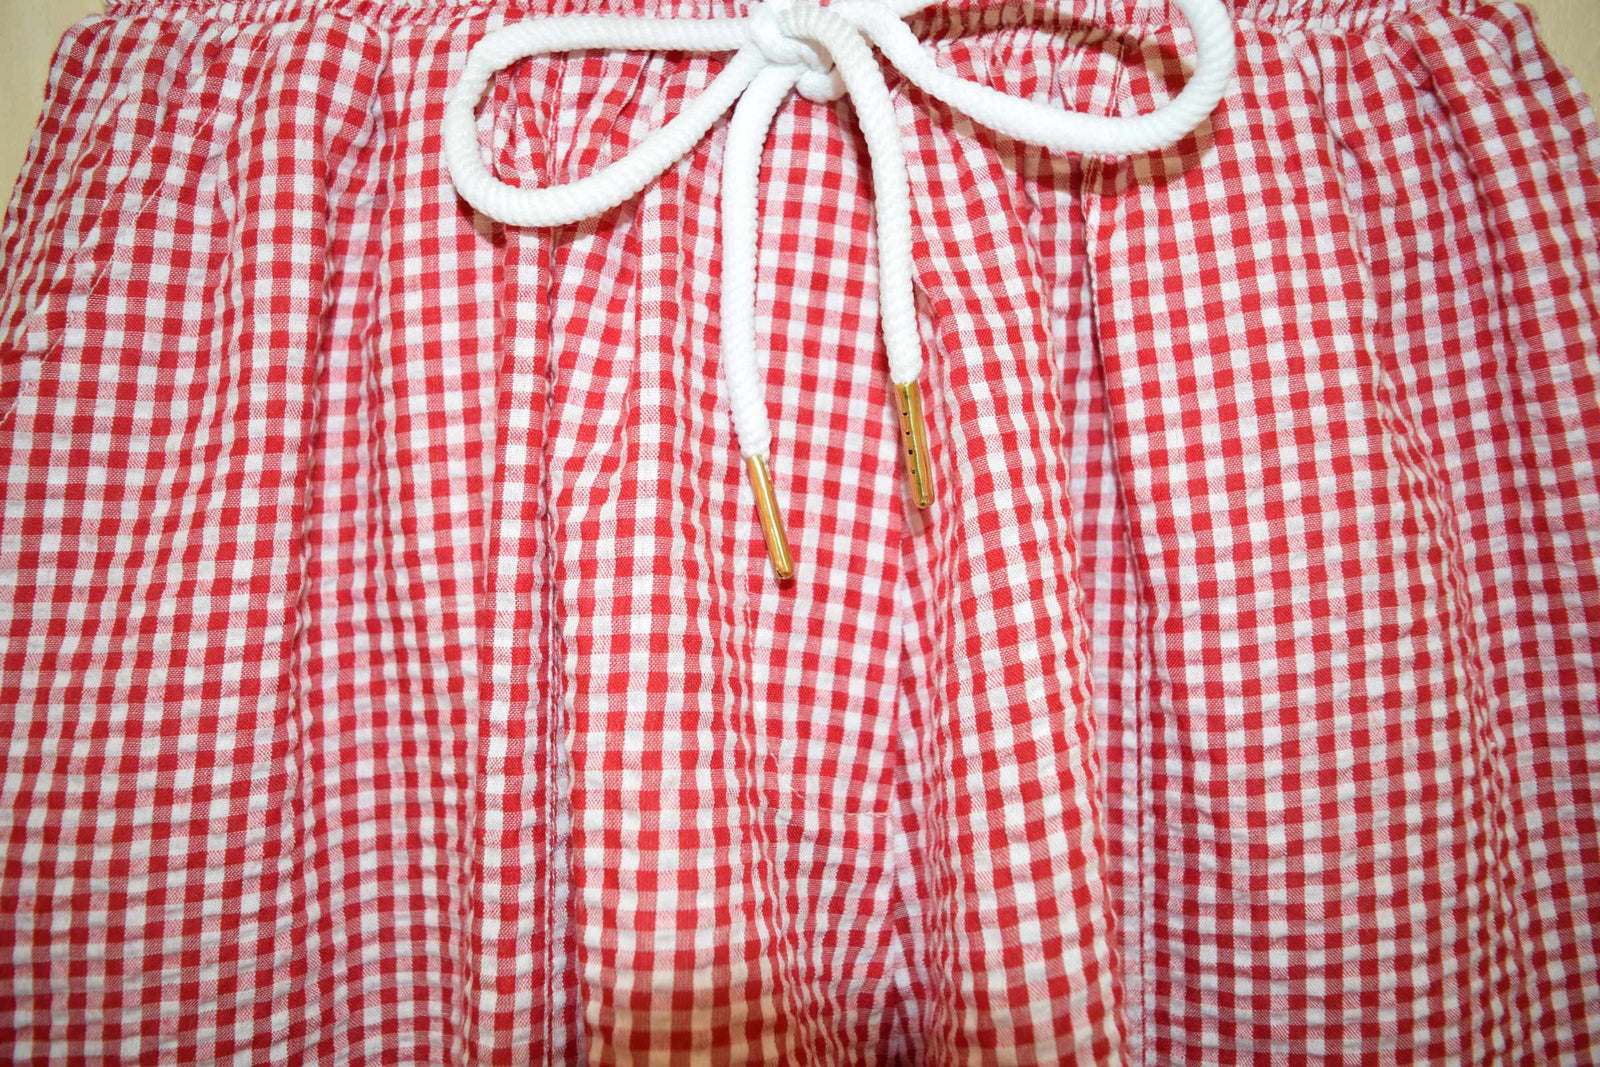 Gingham Tie Shorts Red - With Love Omagh